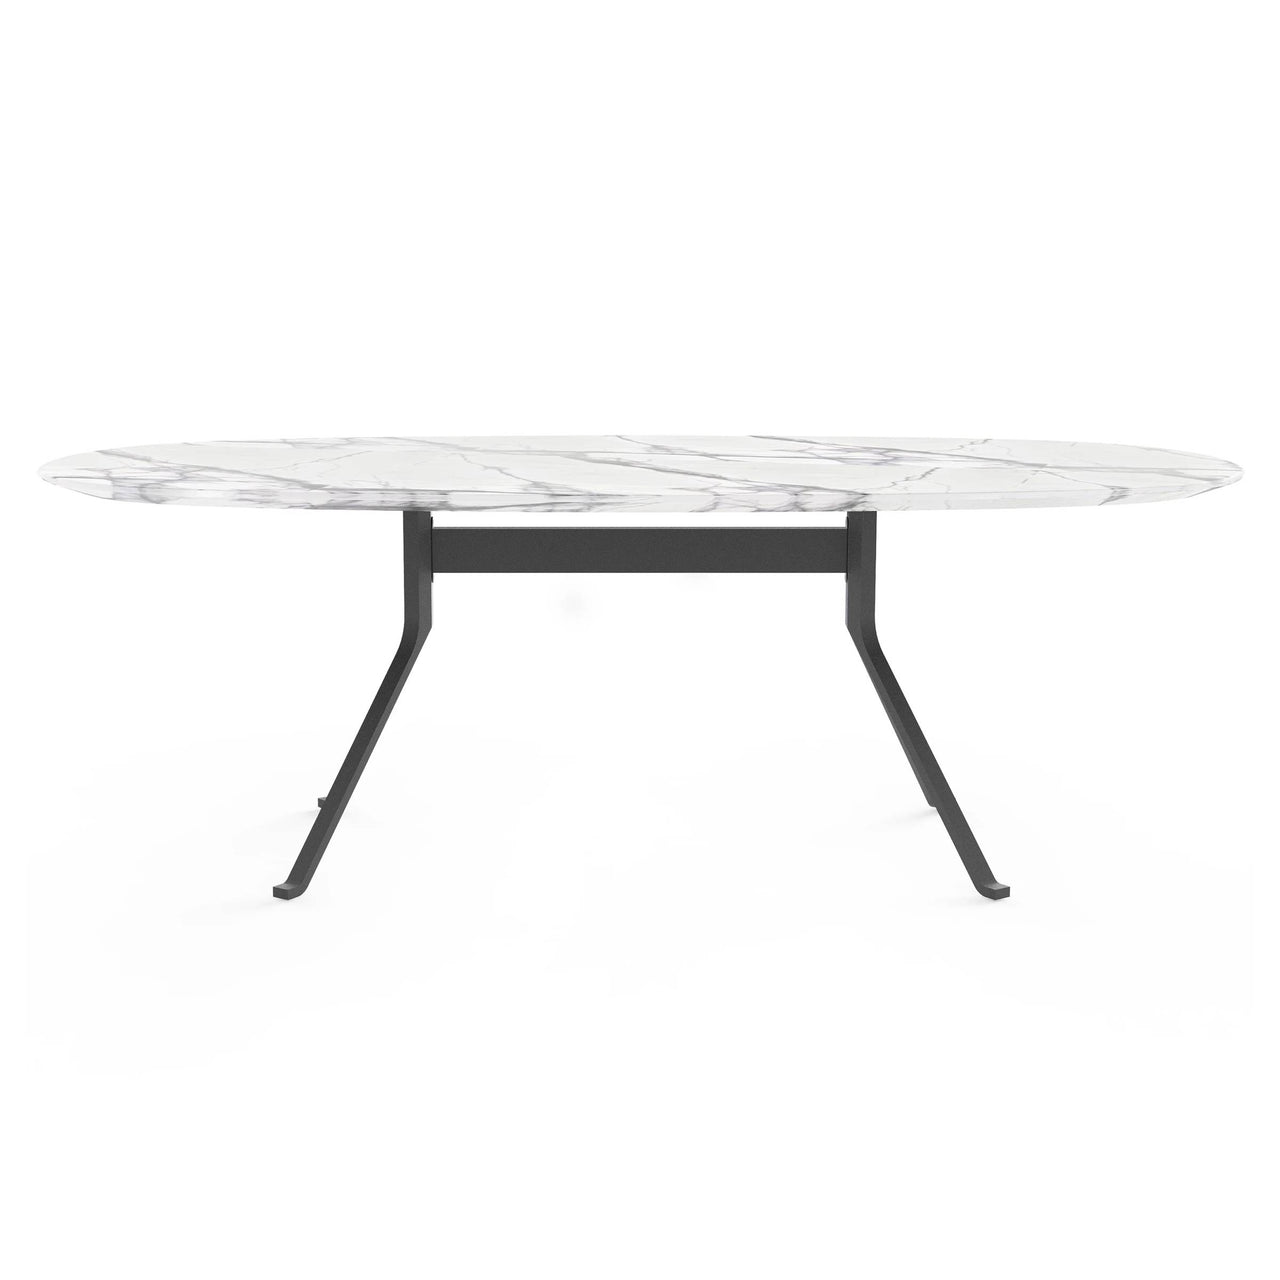 Blink Oval Dining Table: Stone Top